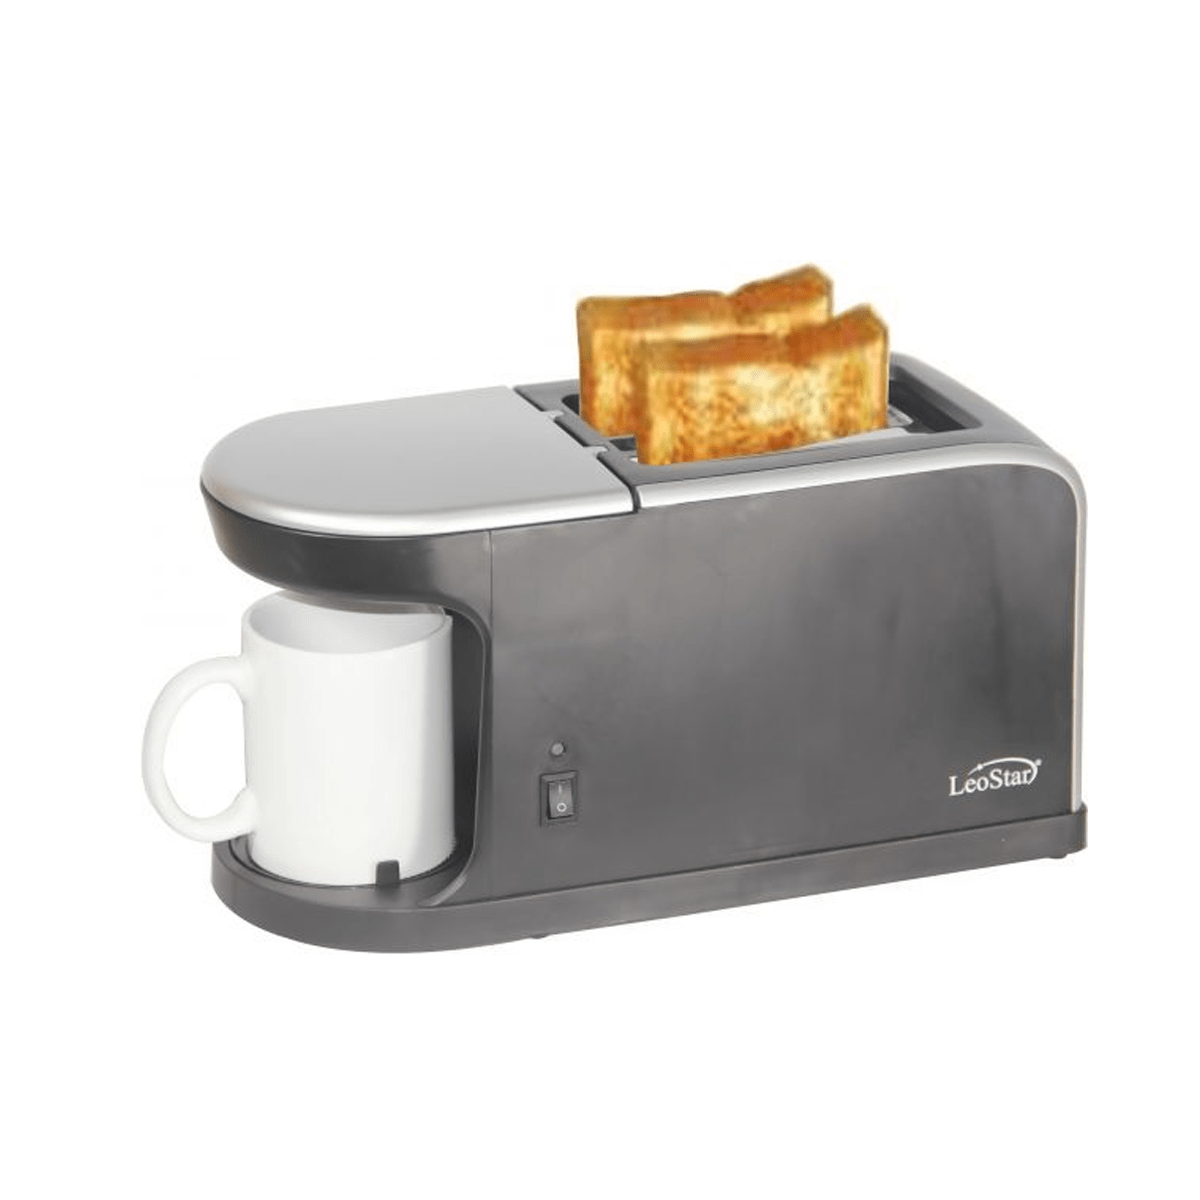 Leostar Morning Combo Toaster & Coffee Maker with mug